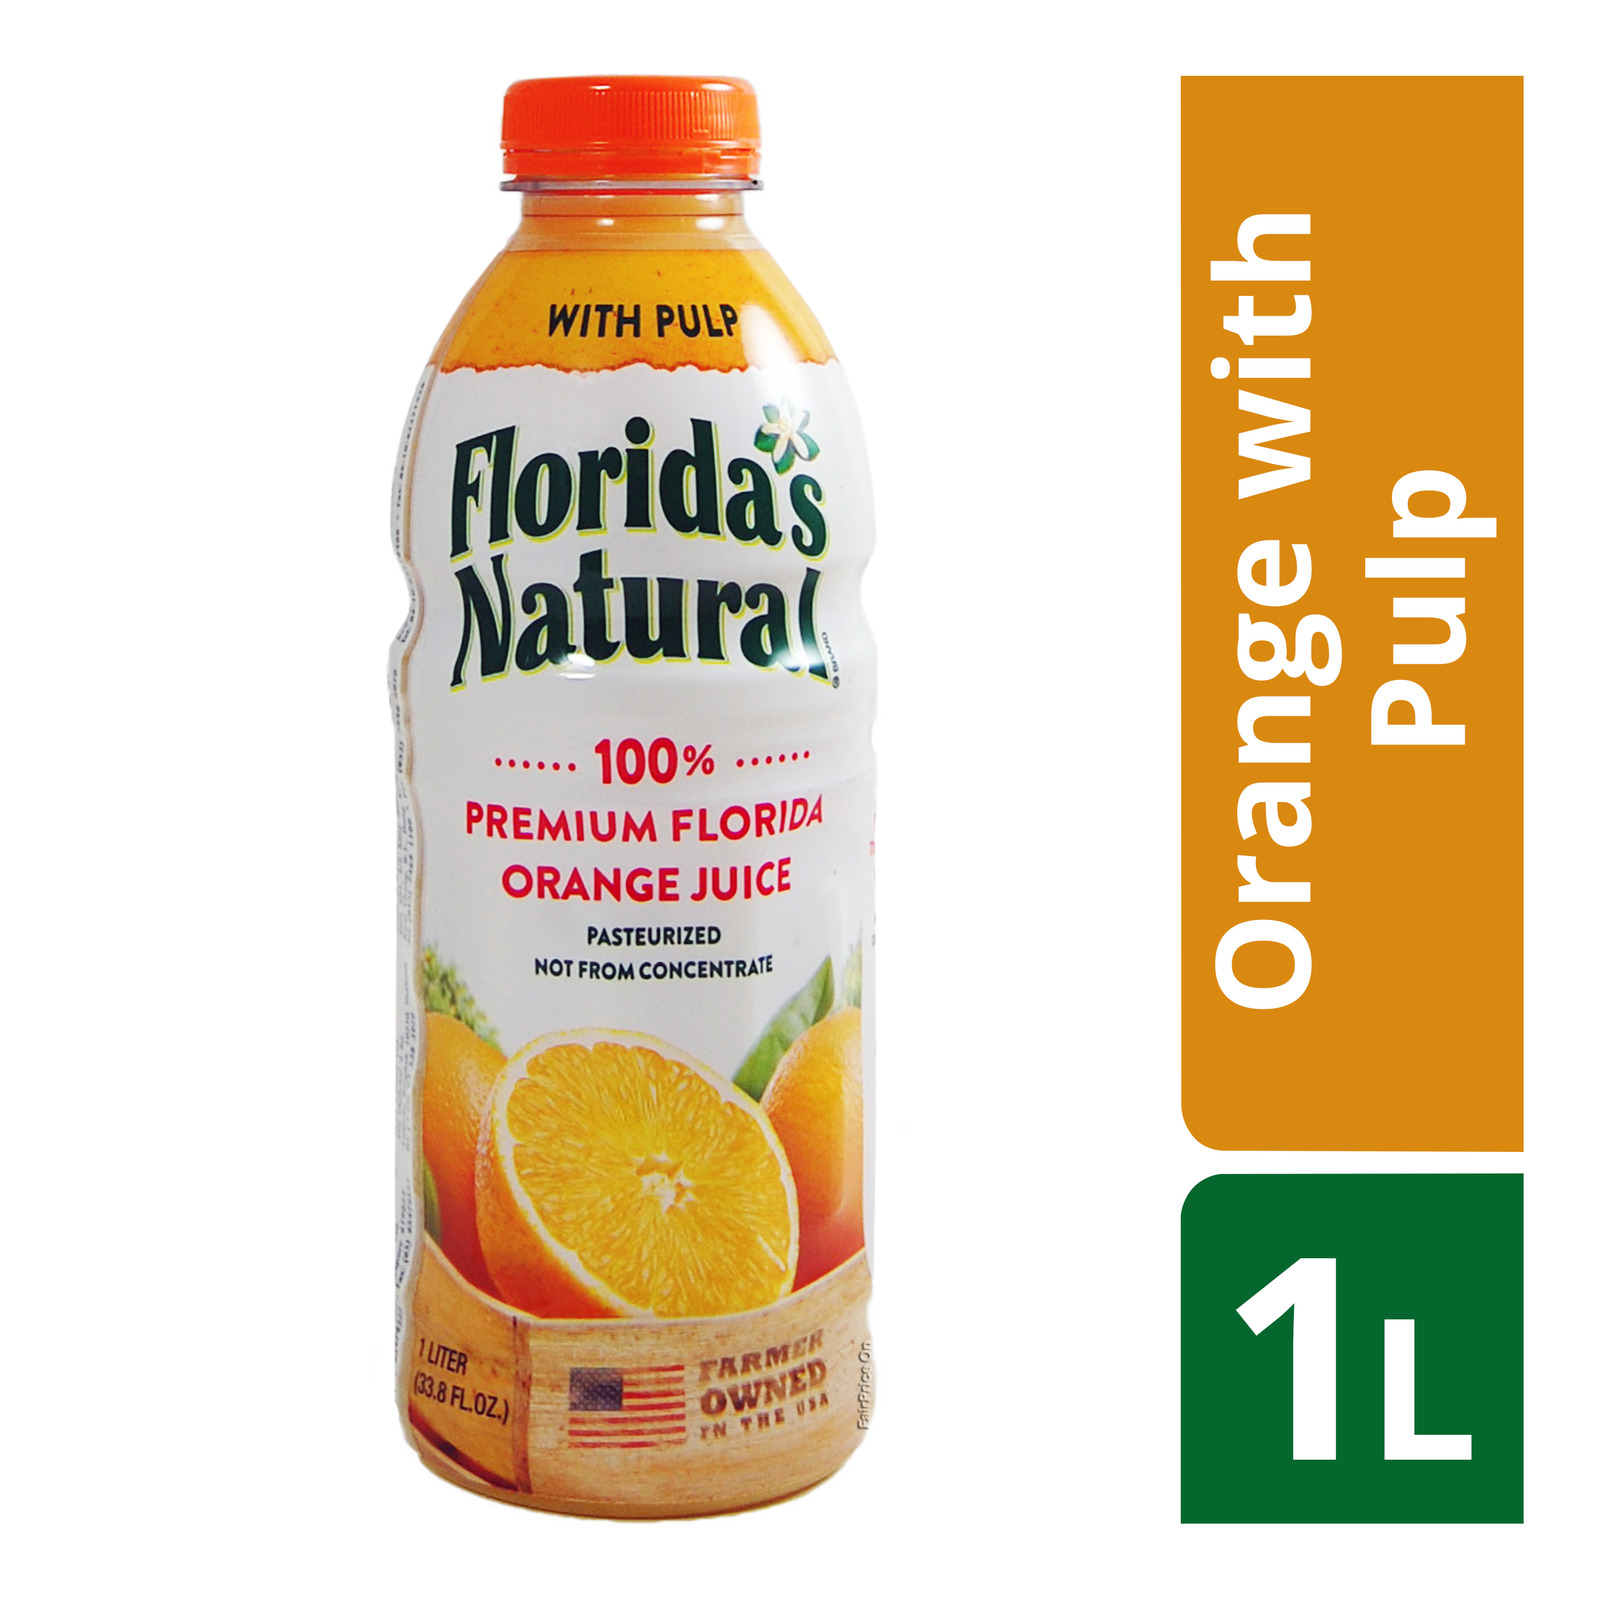 Florida's Natural 100% Fresh Bottle Juice - Orange with Pulp